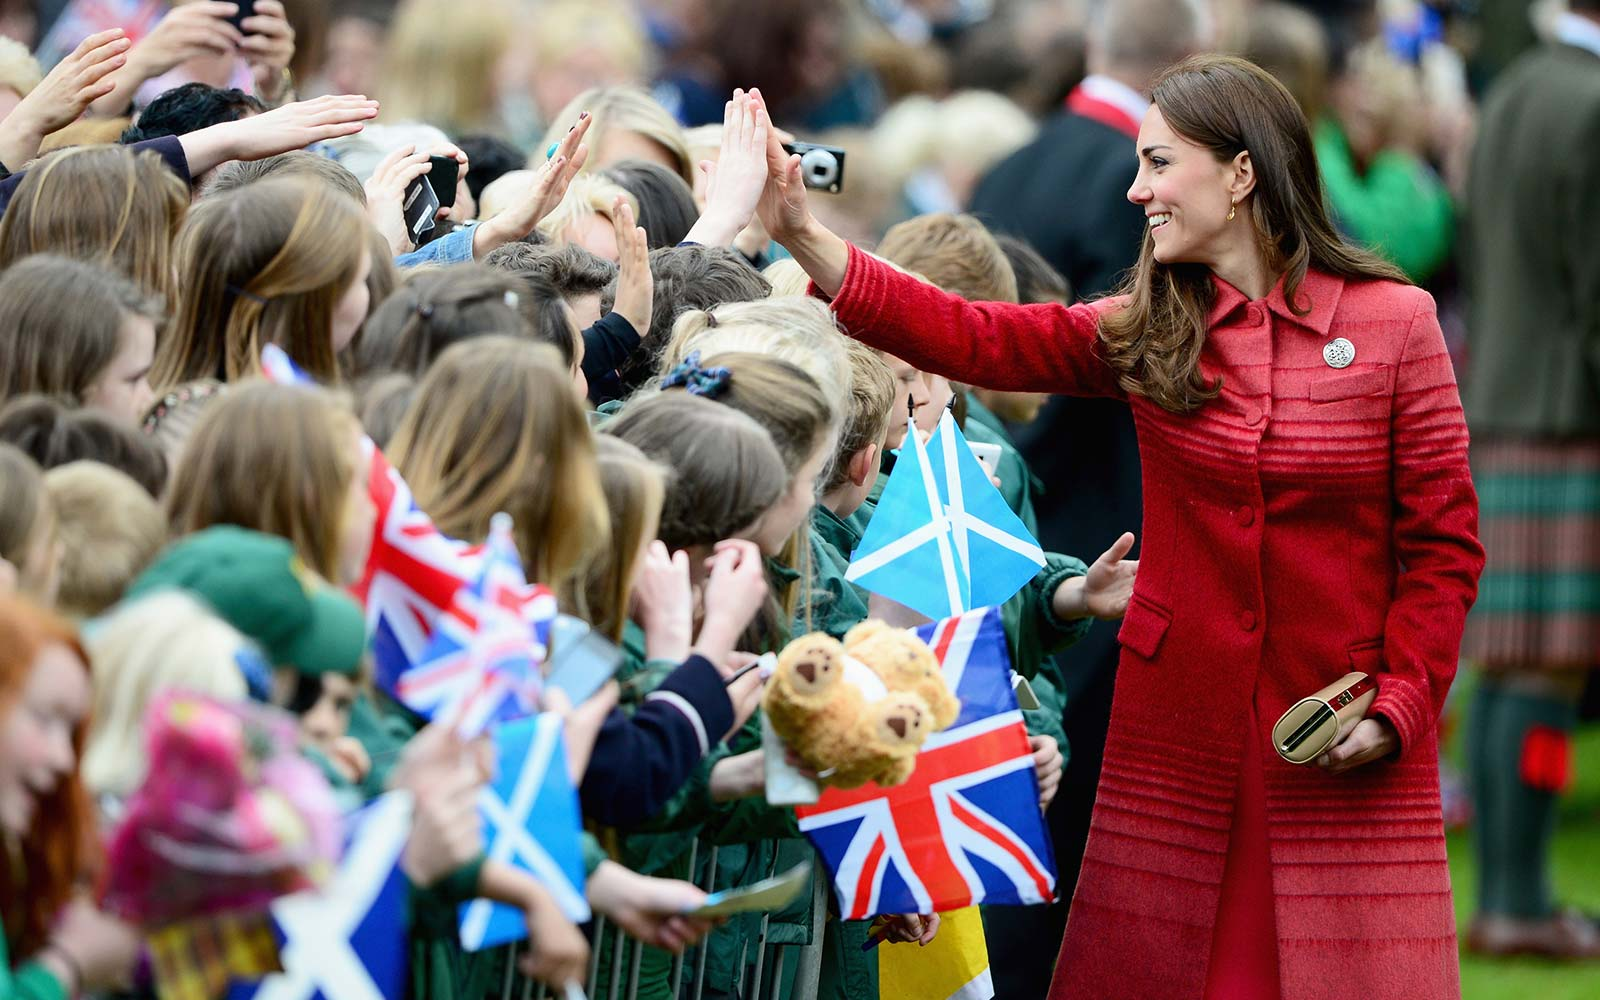 Why the Royal Family Never Gives Autographs